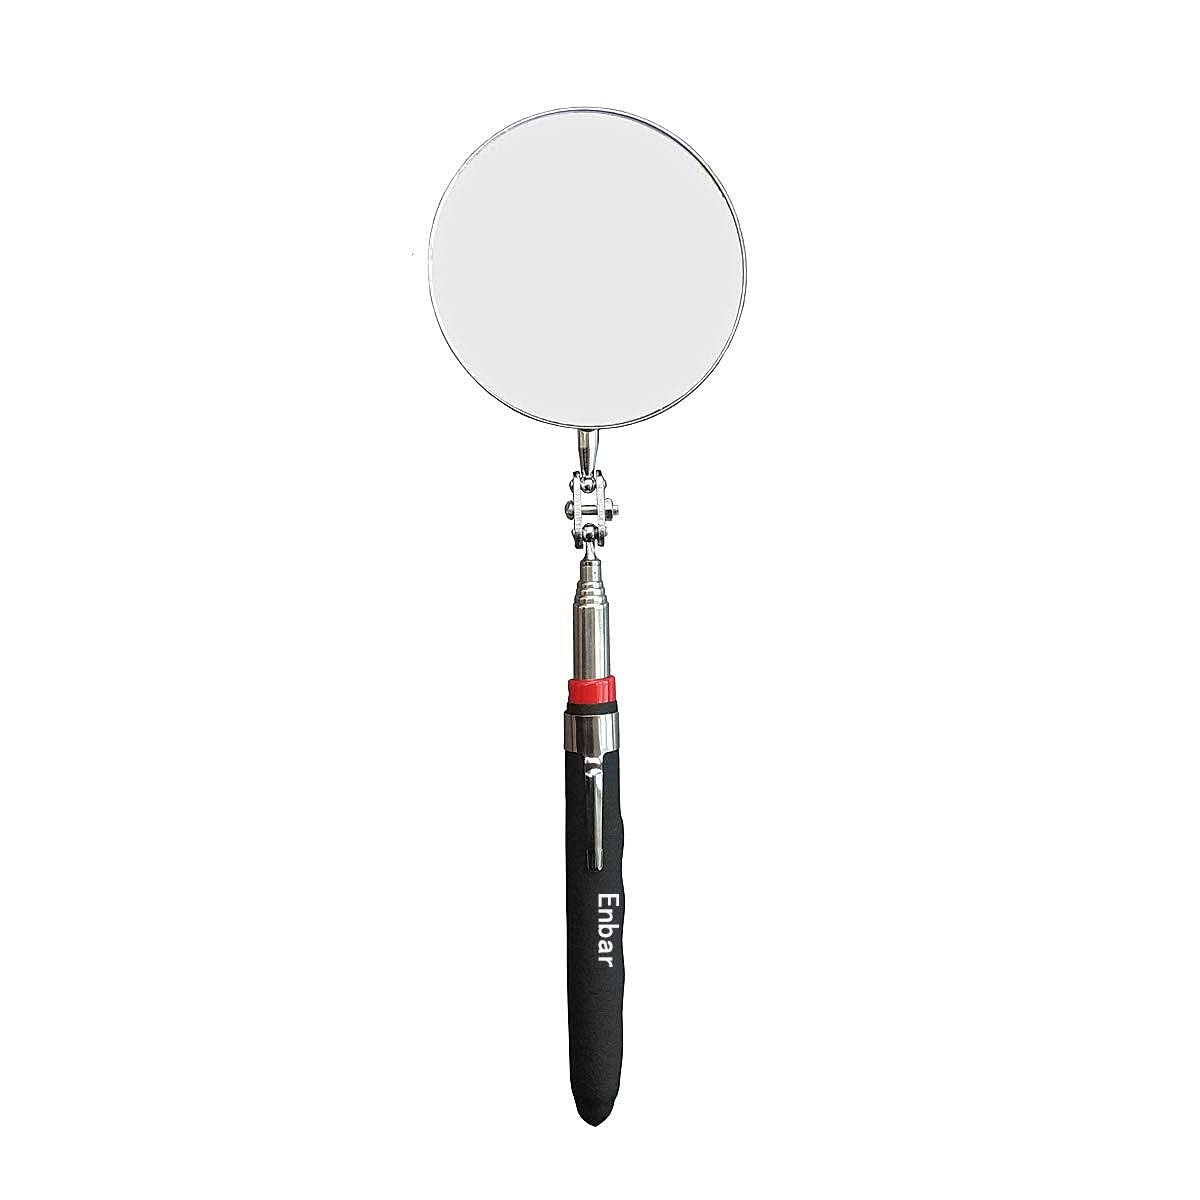 Telescopic Inspection Mirror, Circular Inspection Mirror, Telescopic Inspection Mirror, Flexible Inspection Mirror 360 Rotation, with Buckle Large Round Welding Mirror (Inspection Mirror-01)